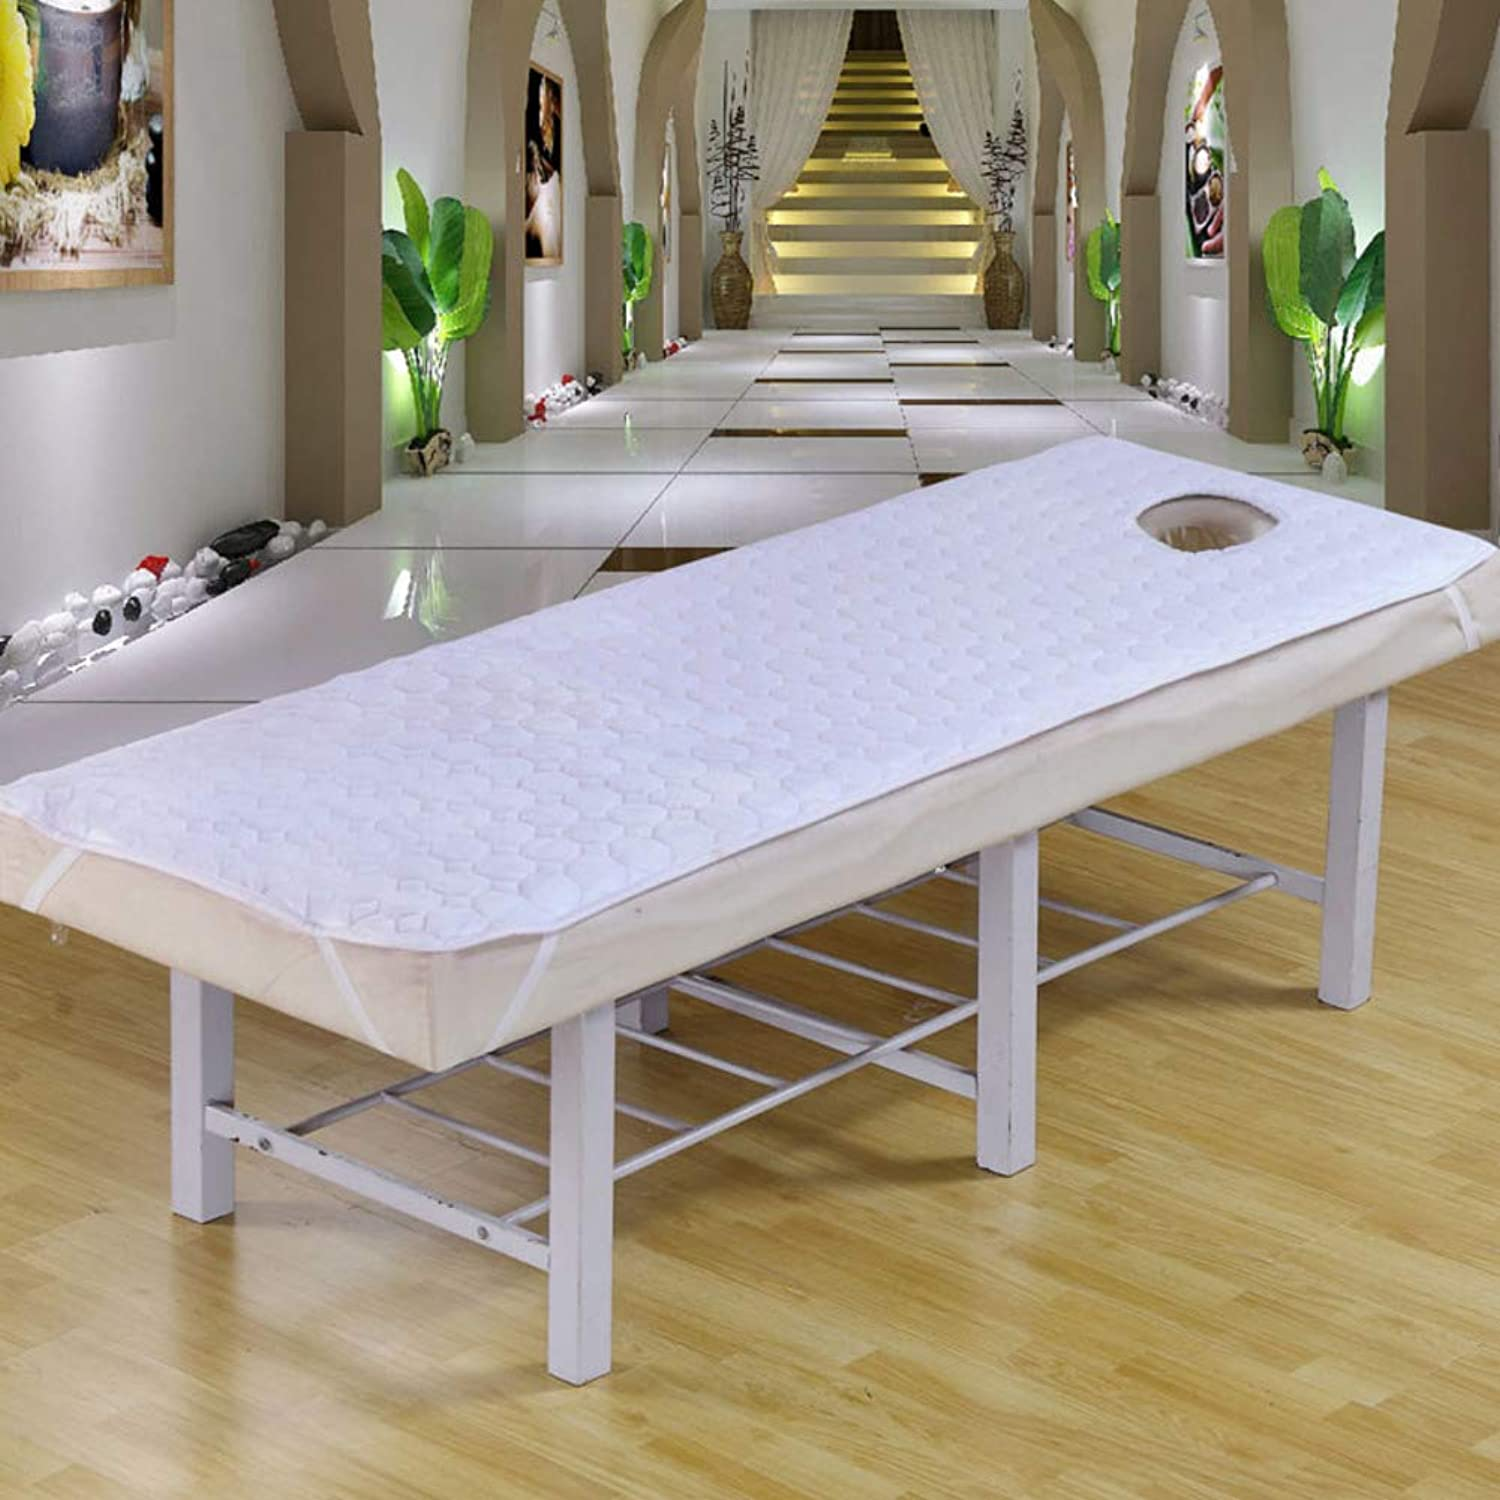 Soft Breathable Spa Massage Table Mattress Toppers,Mattress Predection pad Quilted Fitted Mattress Elastic Massage Beauty Salon-White 70x185cm(28x73inch)